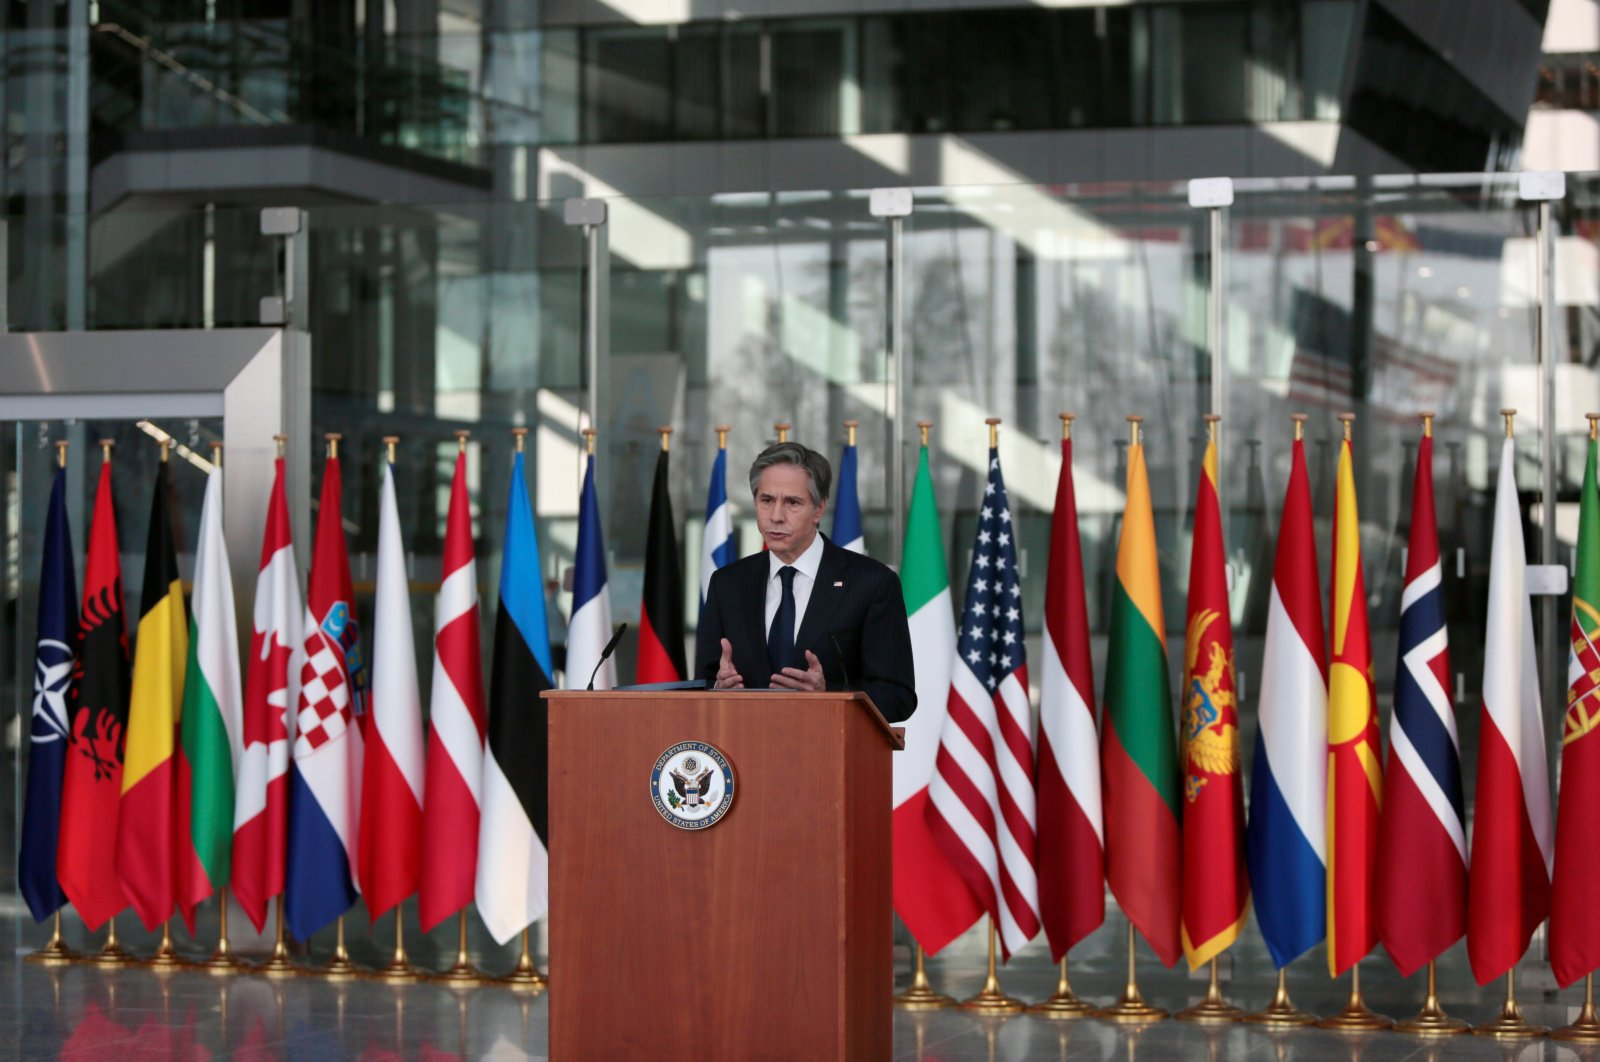 U.S. Secretary of State Antony Blinken delivers a speech after a meeting of NATO foreign ministers at NATO headquarters in Brussels, Belgium, March 24, 2021. (Reuters Photo)